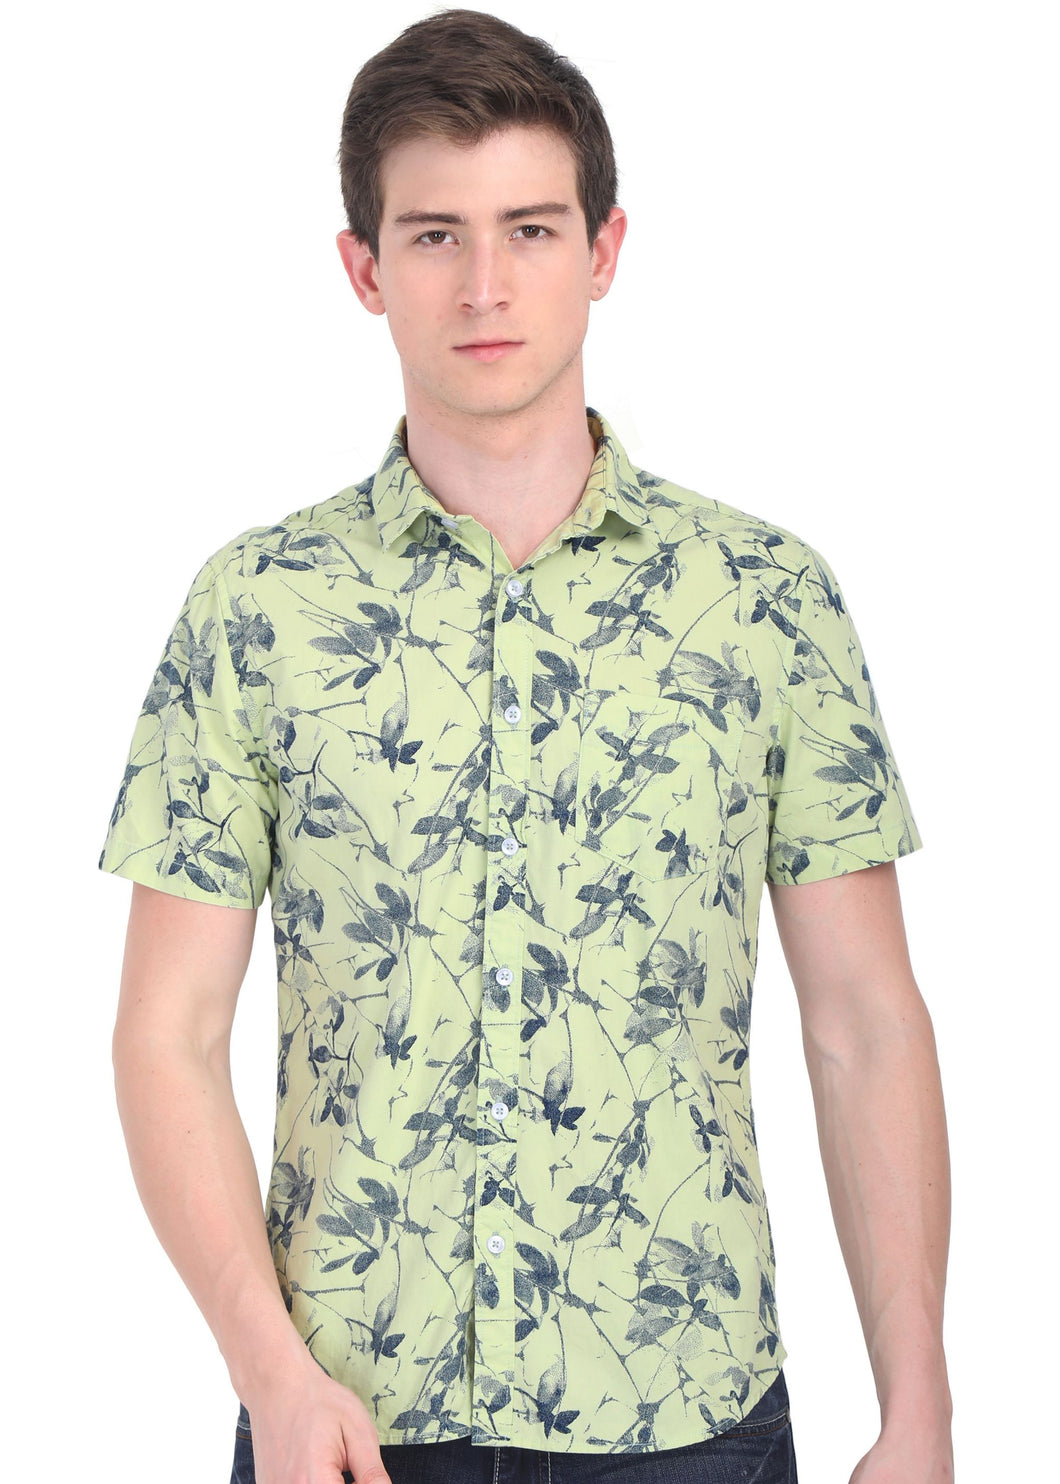 Tusok-fern-greenVacation-Printed Shirtimage-PrakashGreen (1)